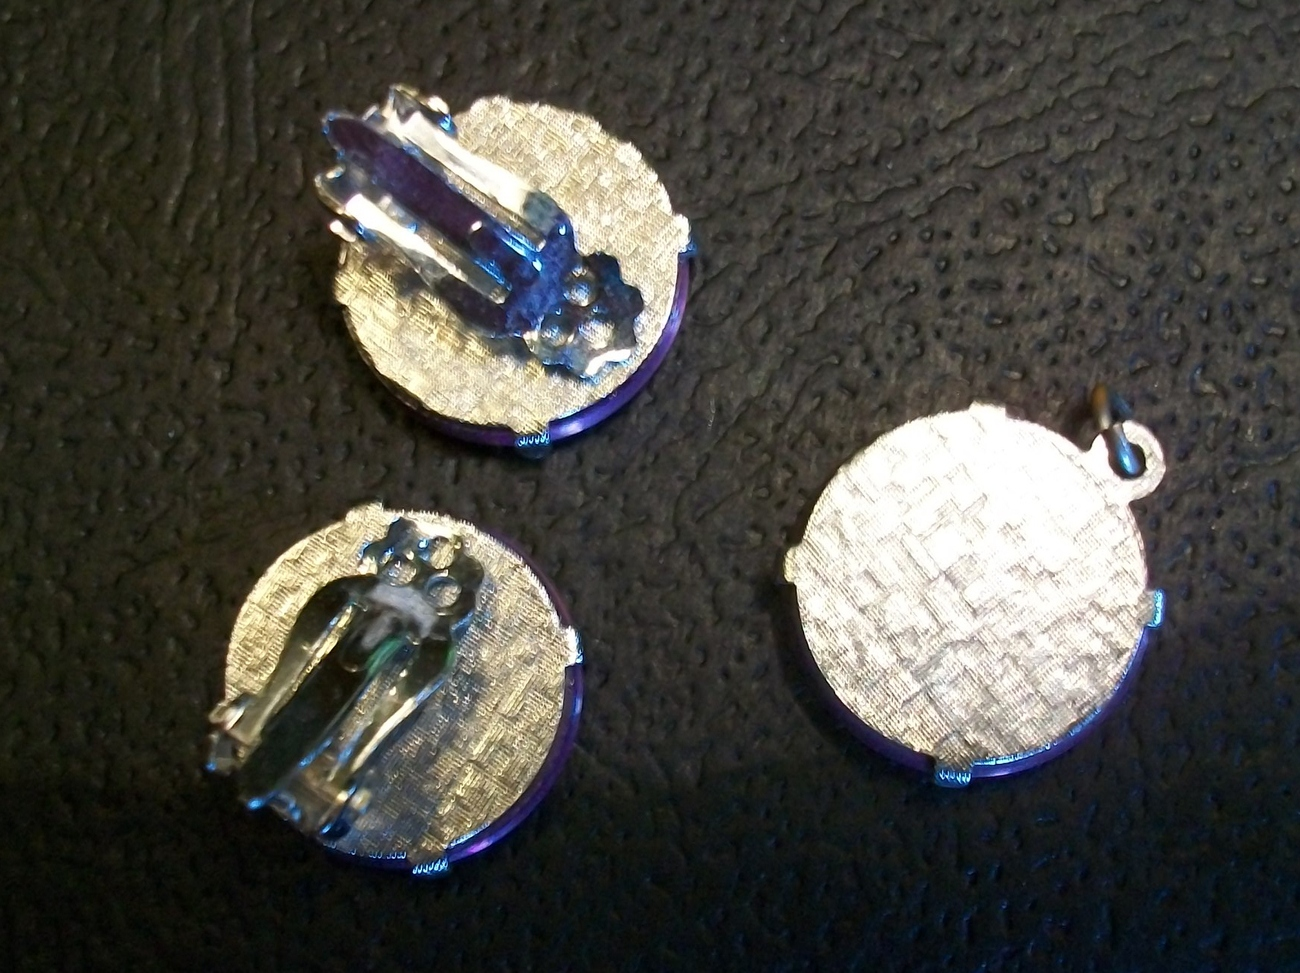 Vintage 3 piece Clip-on Earring and Pendant Set - Holographic Discs